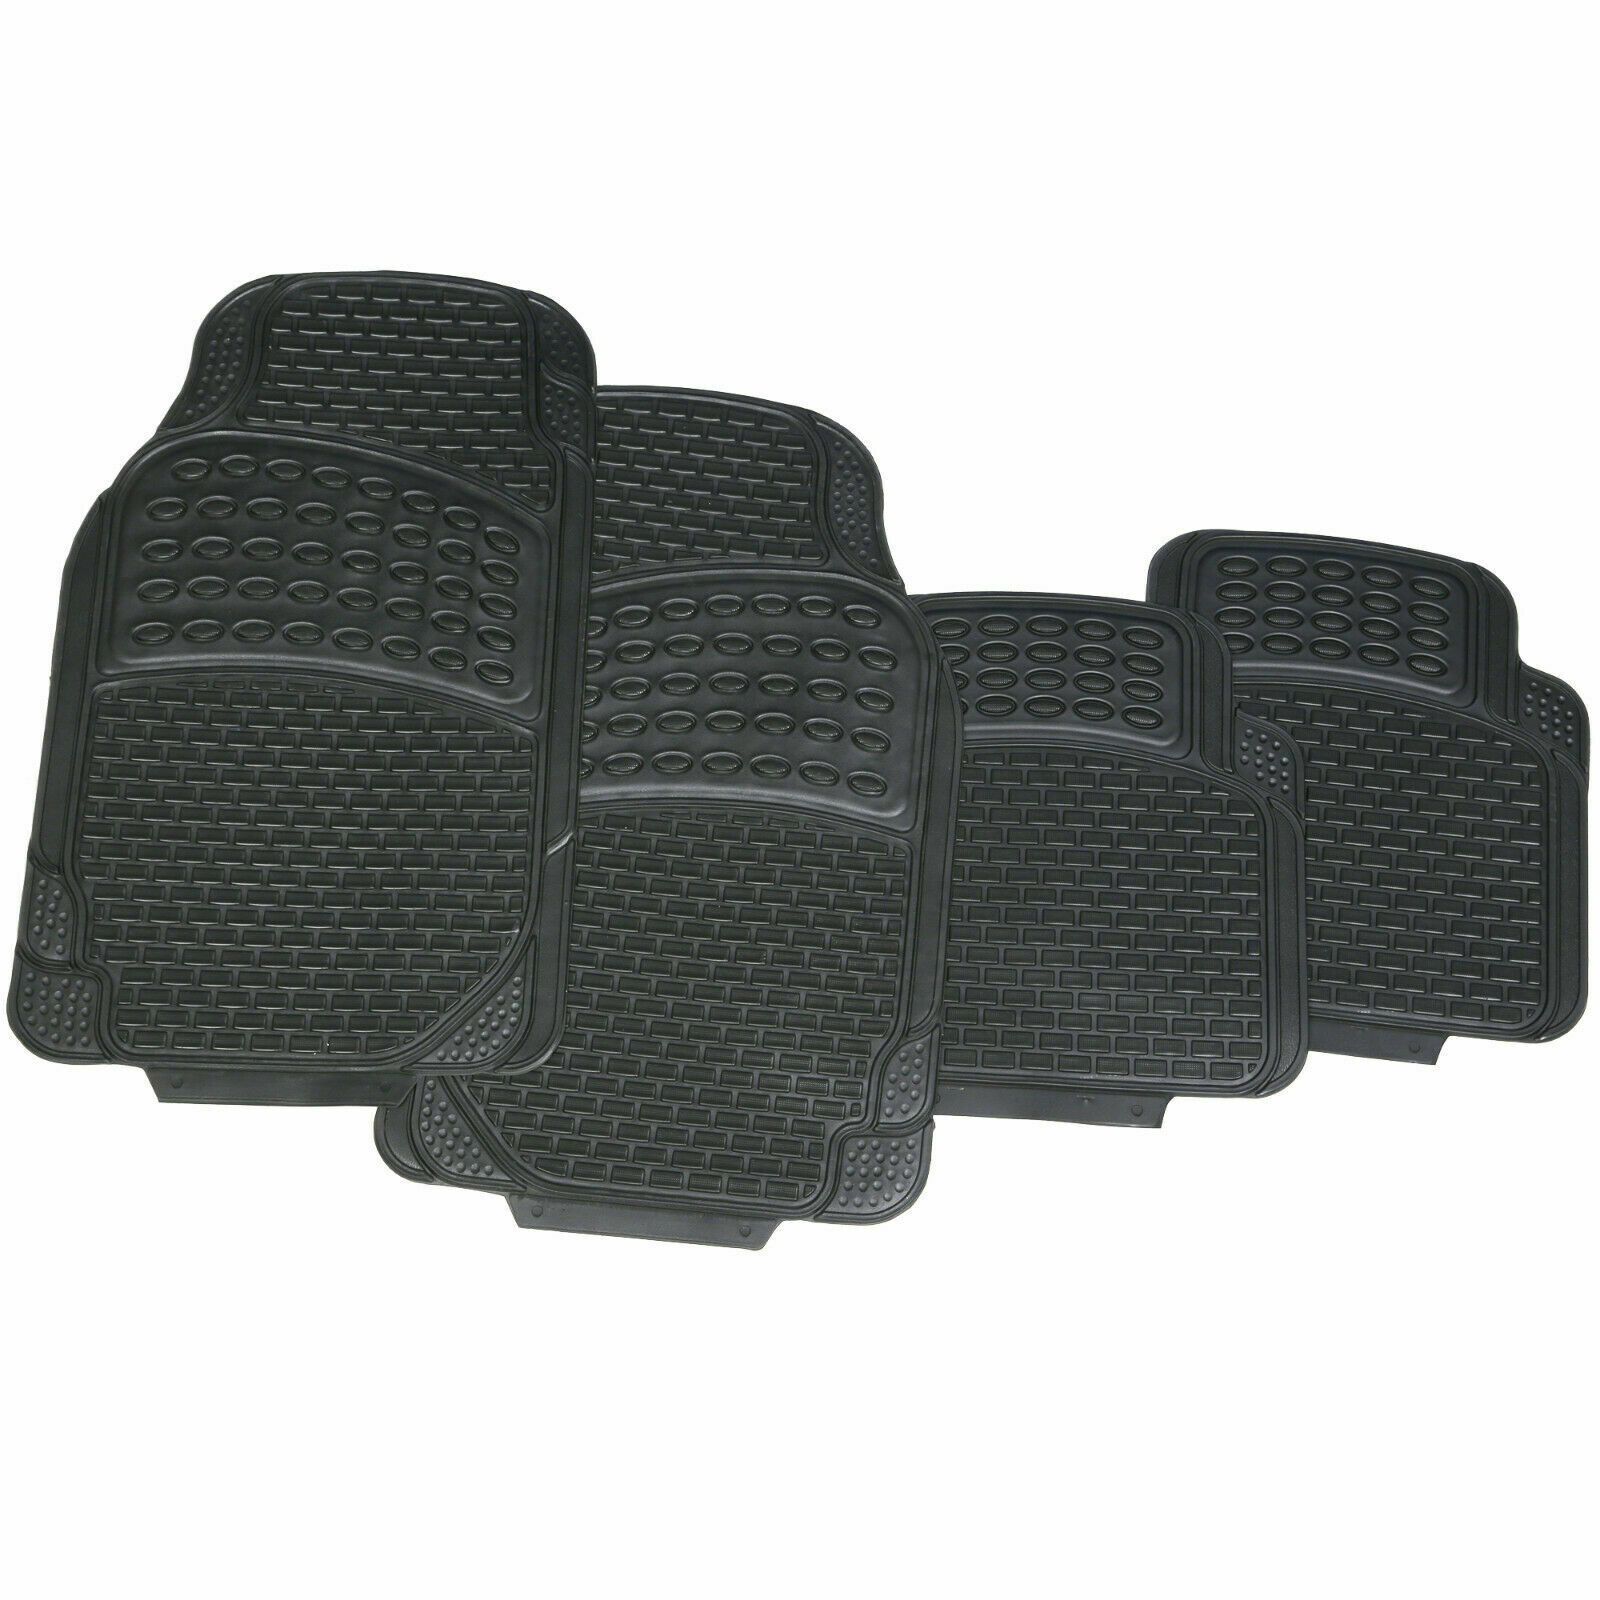 Car Parts - 4 PCS CAR MATS RUBBER BLACK UNIVERSAL FIT HEAVY DUTY NON SLIP WATERPROOF VAN